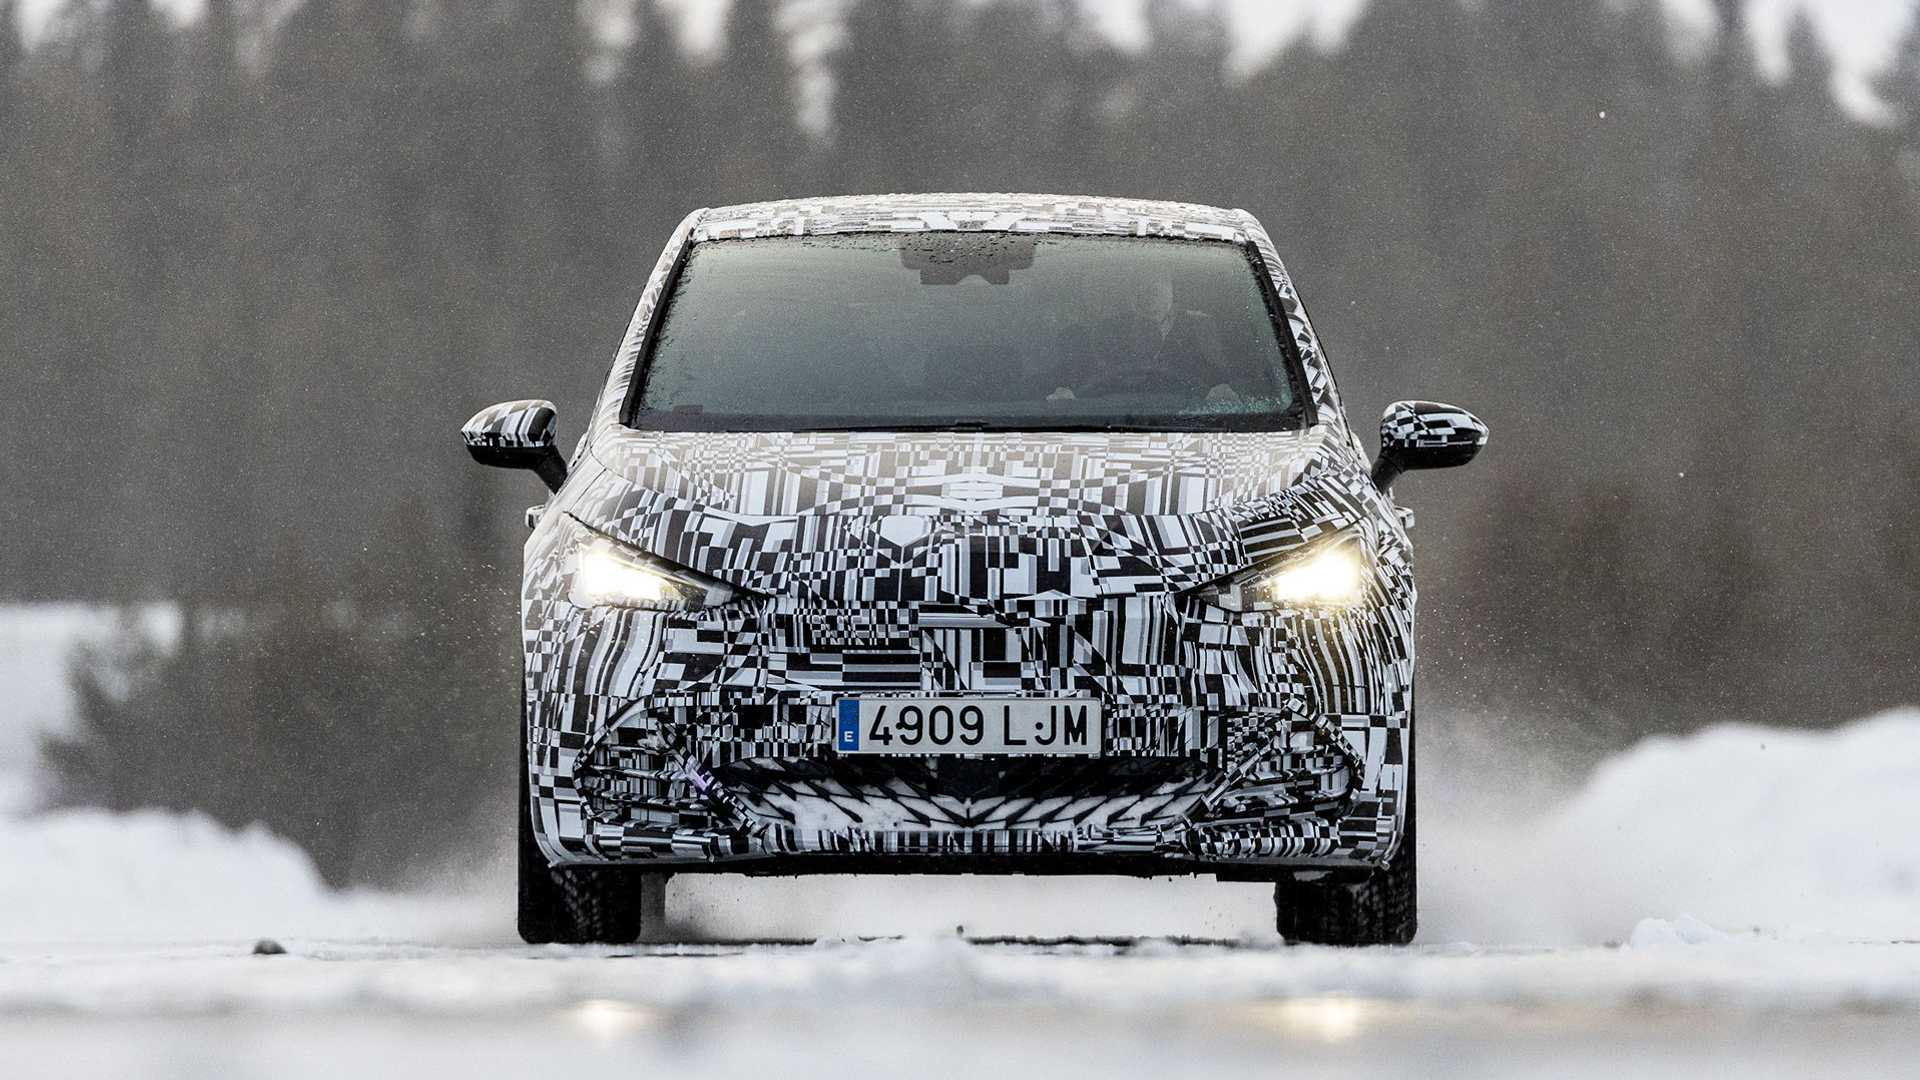 Cupra sure took its time with the electric Born, having revealed the Seat el-Born Concept two years ago and its Cupra counterpart a year after that. Now, it is finally official that the car will hit the spotlight in May.